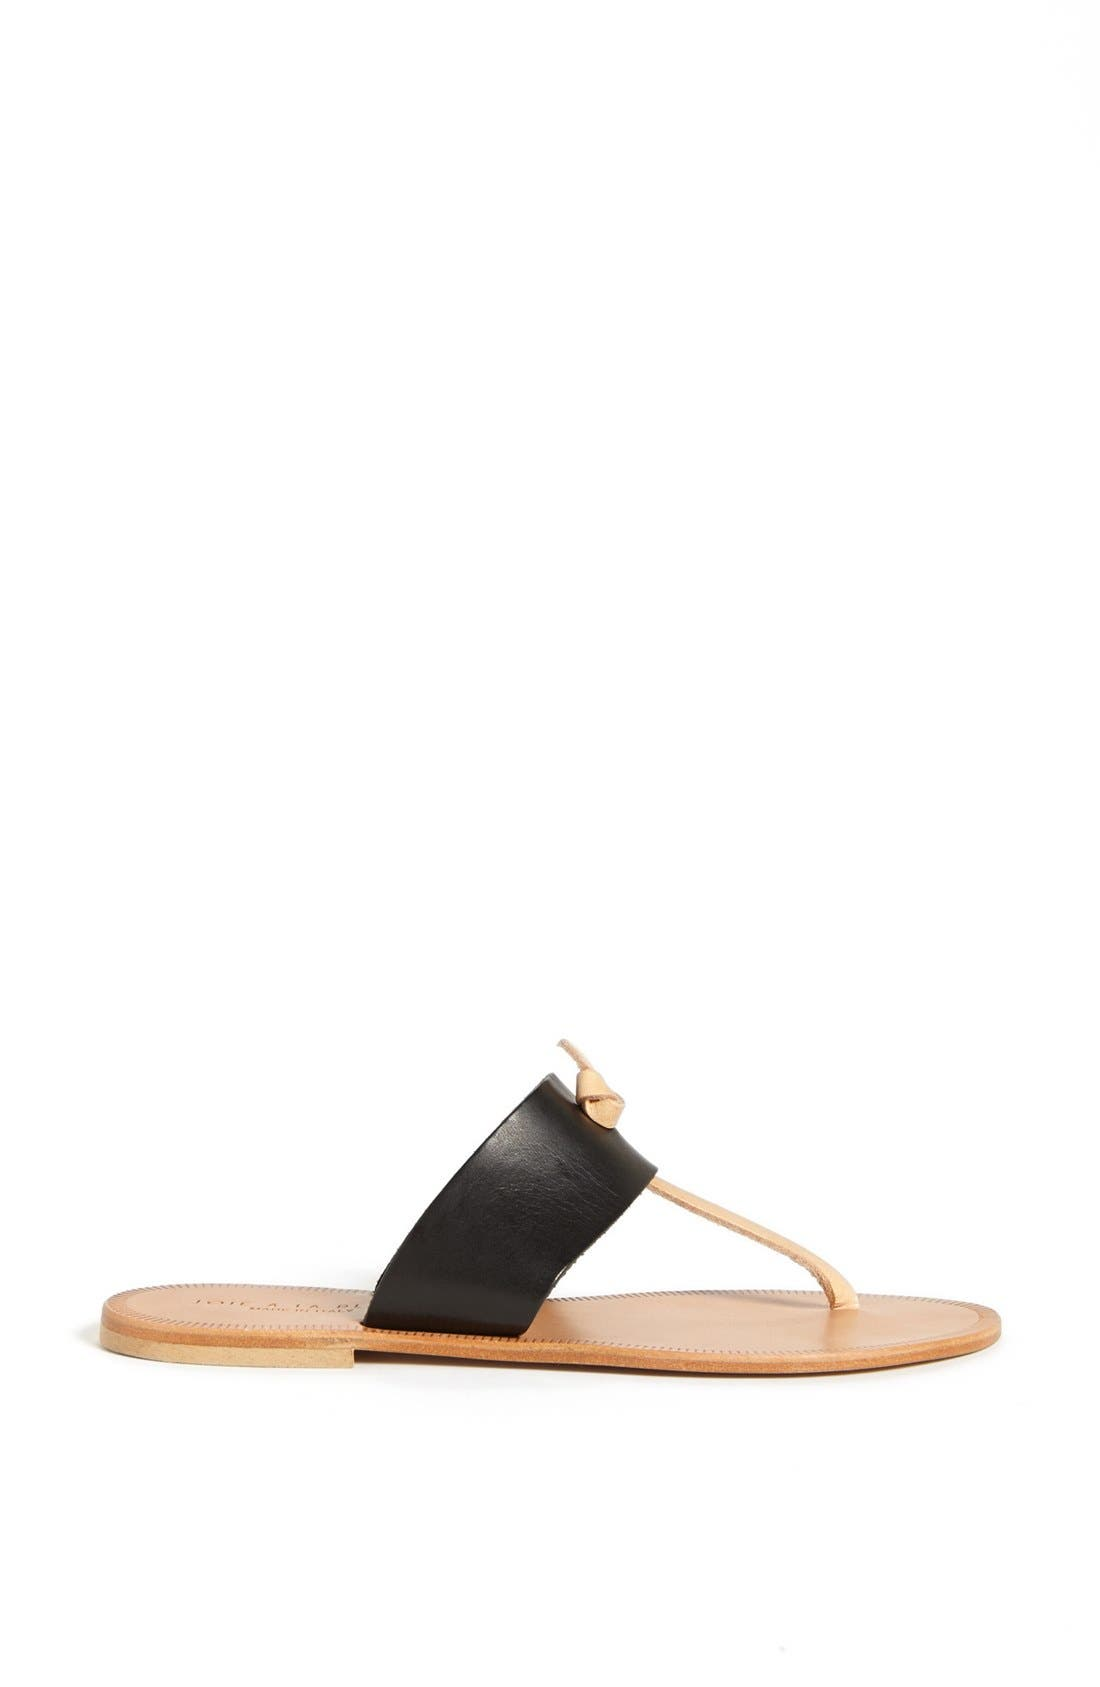 JOIE, a la Plage 'Nice' Flip Flop, Alternate thumbnail 5, color, 001